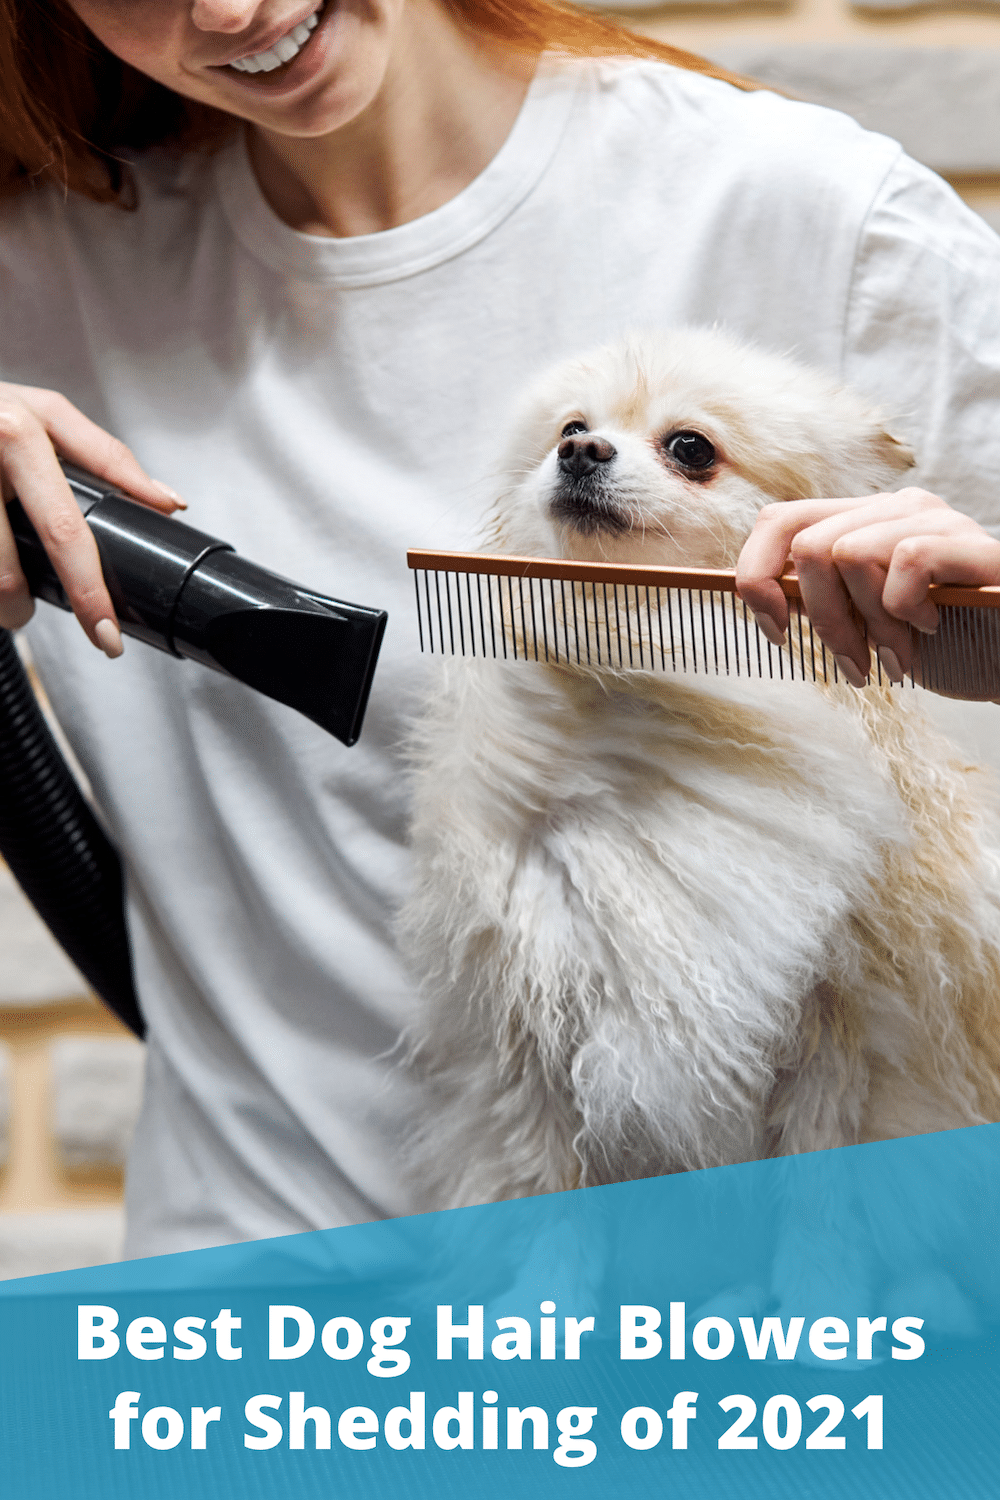 Top 5 Best Dog Hair Blowers for Shedding (2021 Reviews)